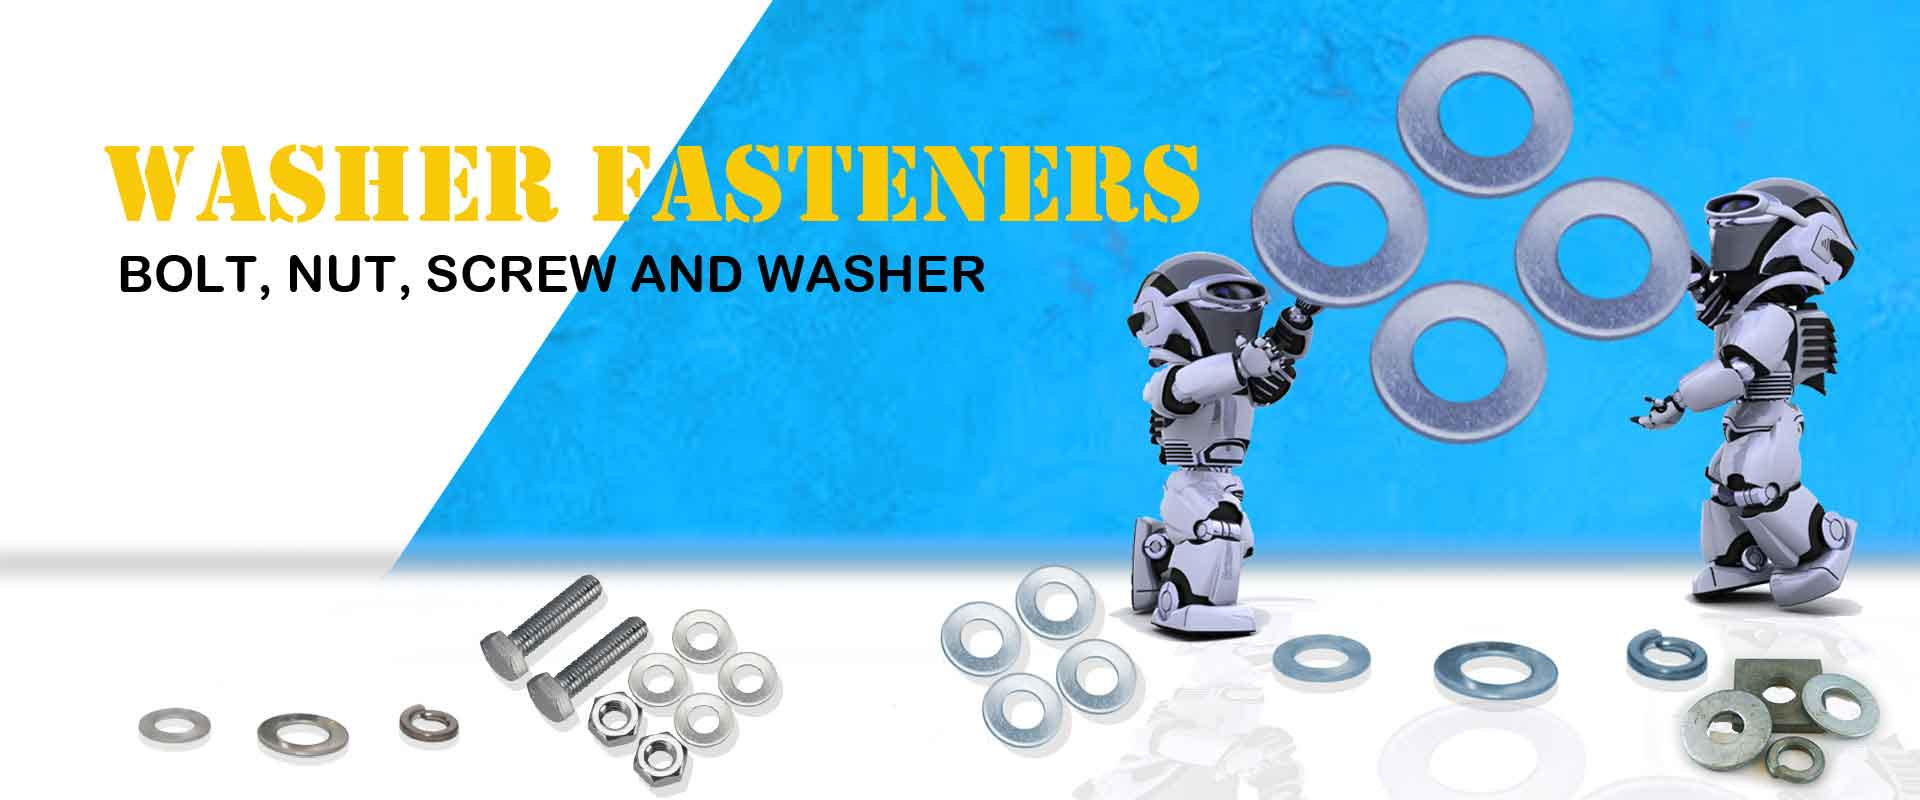 Washer Fasteners